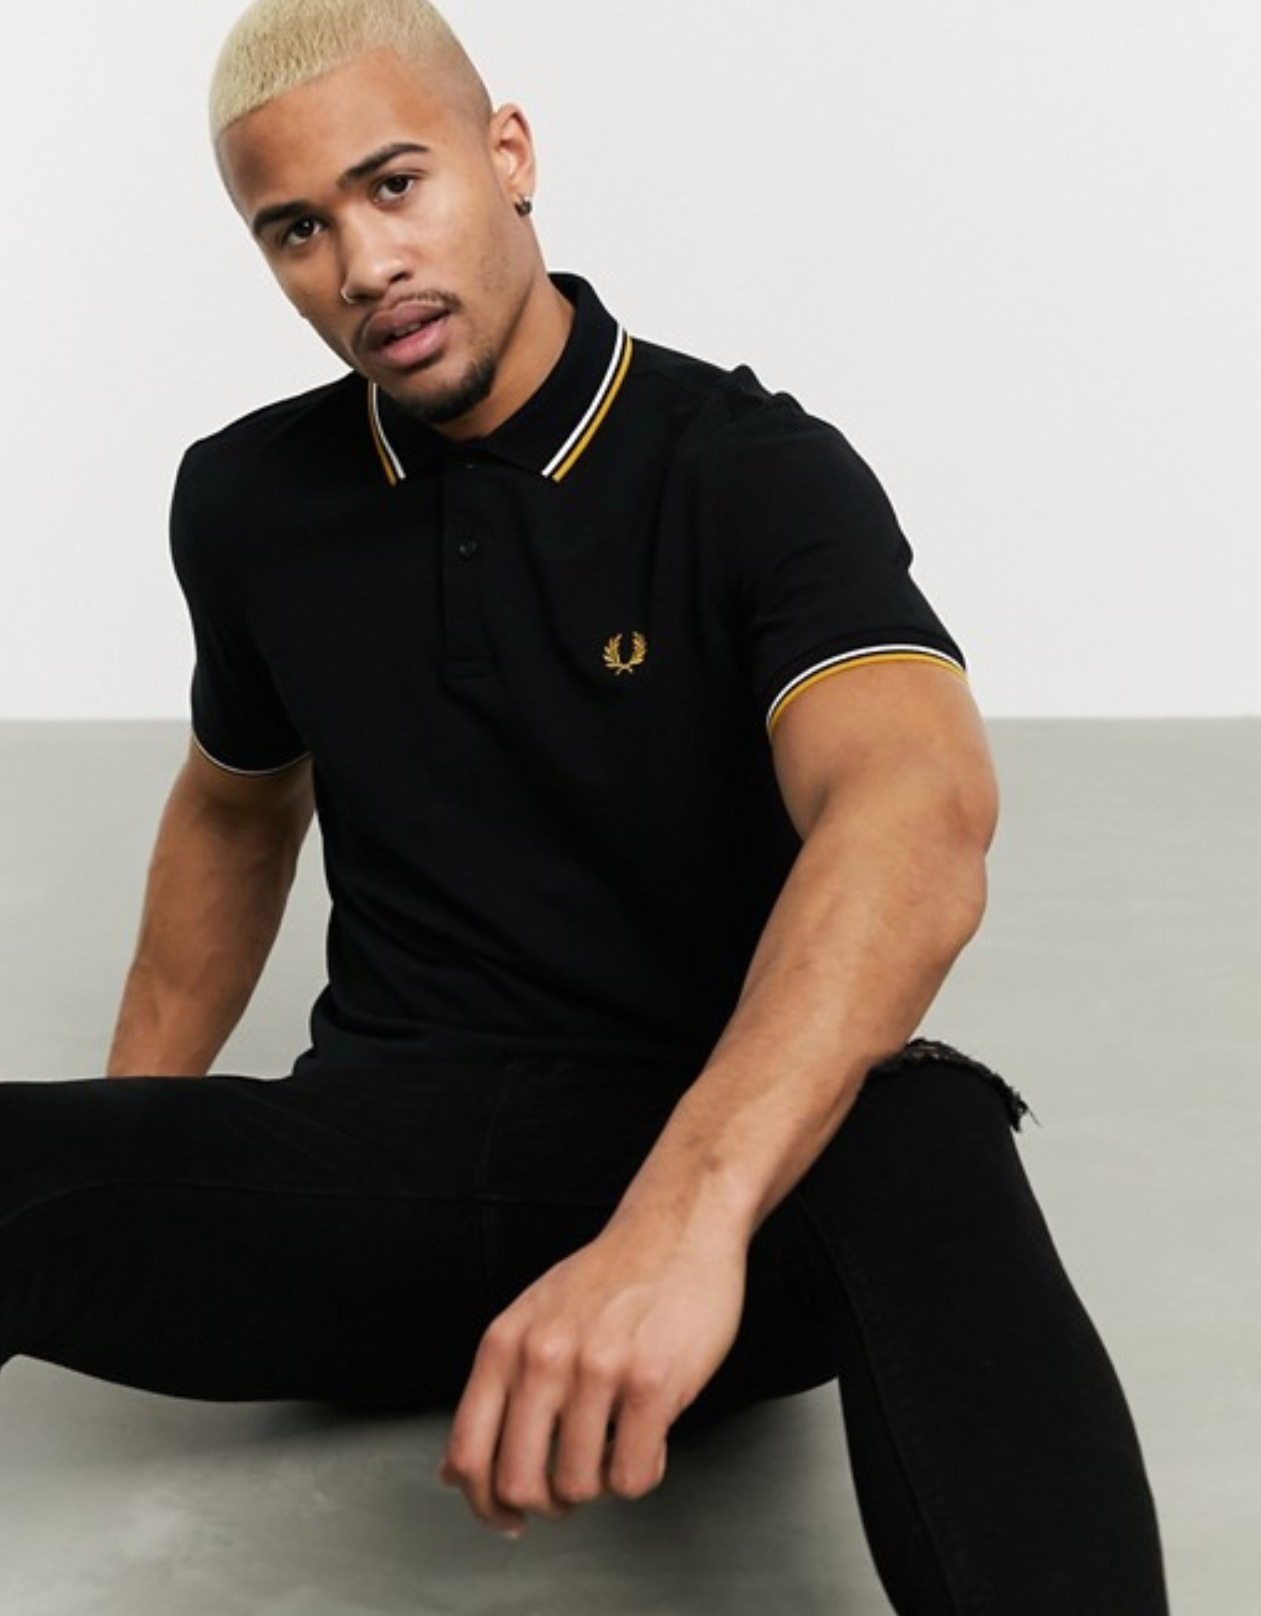 shop oliver spencer fred perry